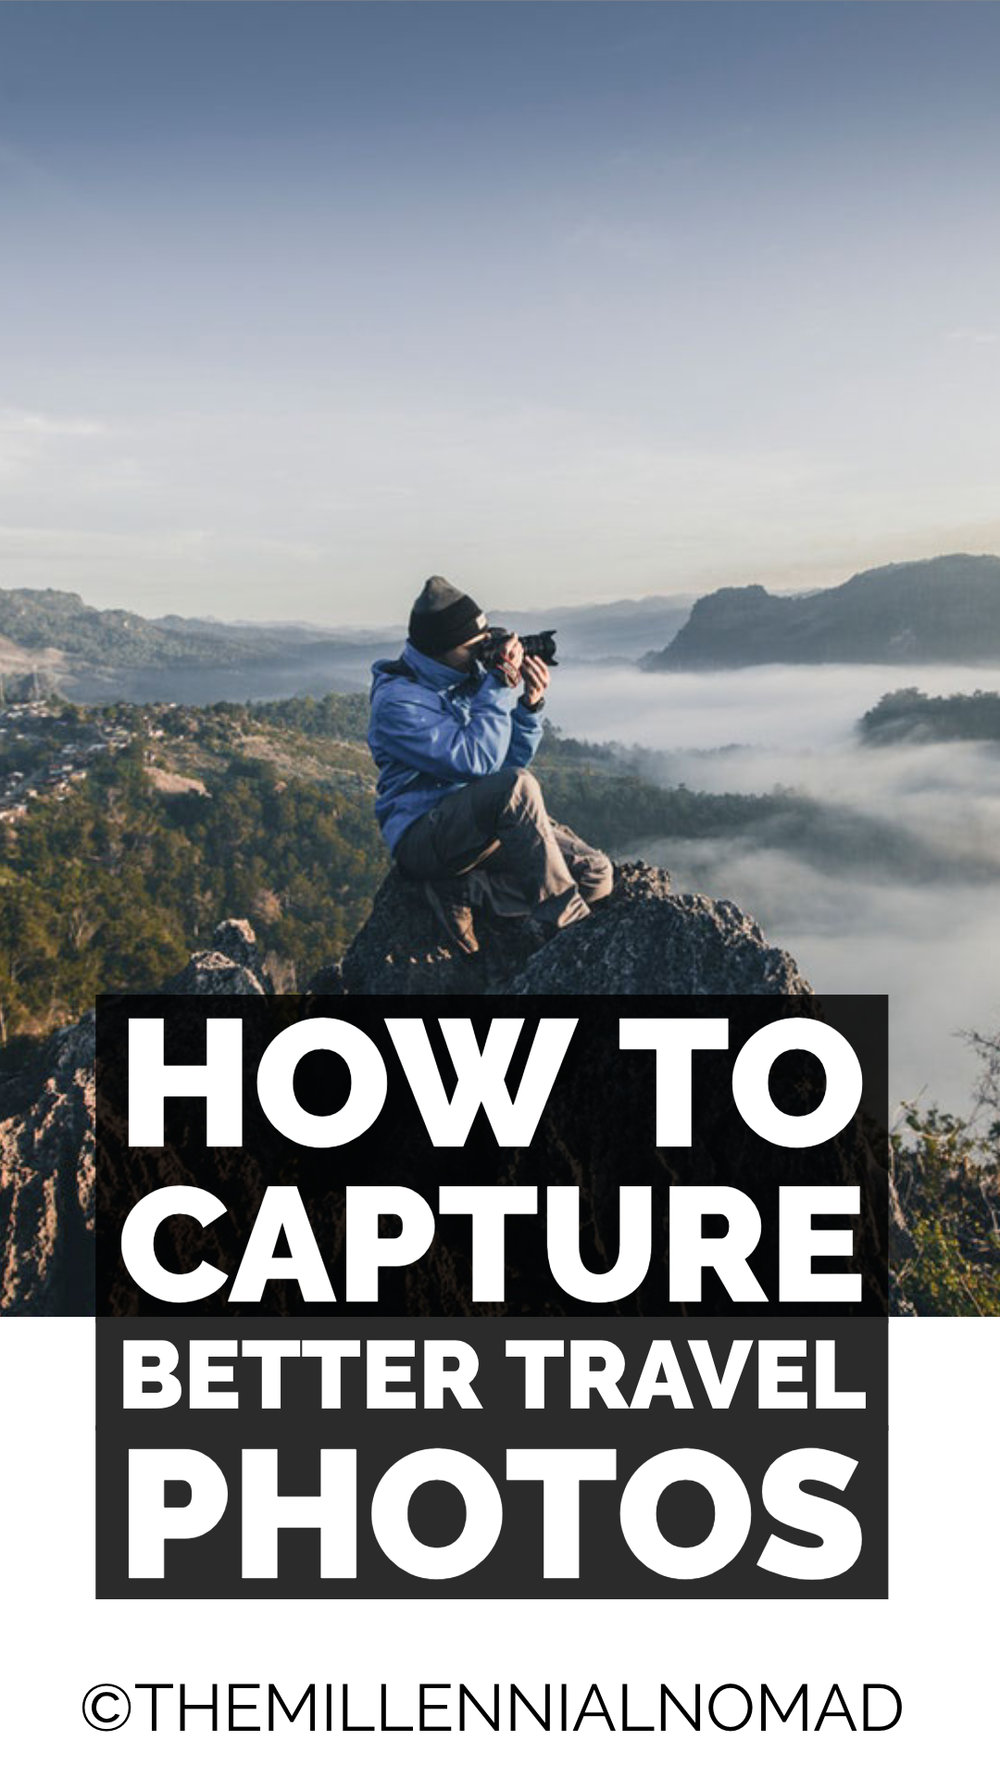 I have been taking photos for as long as I can remember and have been traveling to 40 countries across 5 continents in 3 years since I started my travel blog in 2015. The goal then was just to share my travels with my friends and family and capture memories on the go. I also knew that I needed to take better photos with higher quality to make them stand out and bring my readers with me along my travels. This is when I upgraded to the Sony a5000 camera and since a year now the Sony a6300. In this article I will share with you my best practices when it comes to taking better travel photos on your next holiday destination.